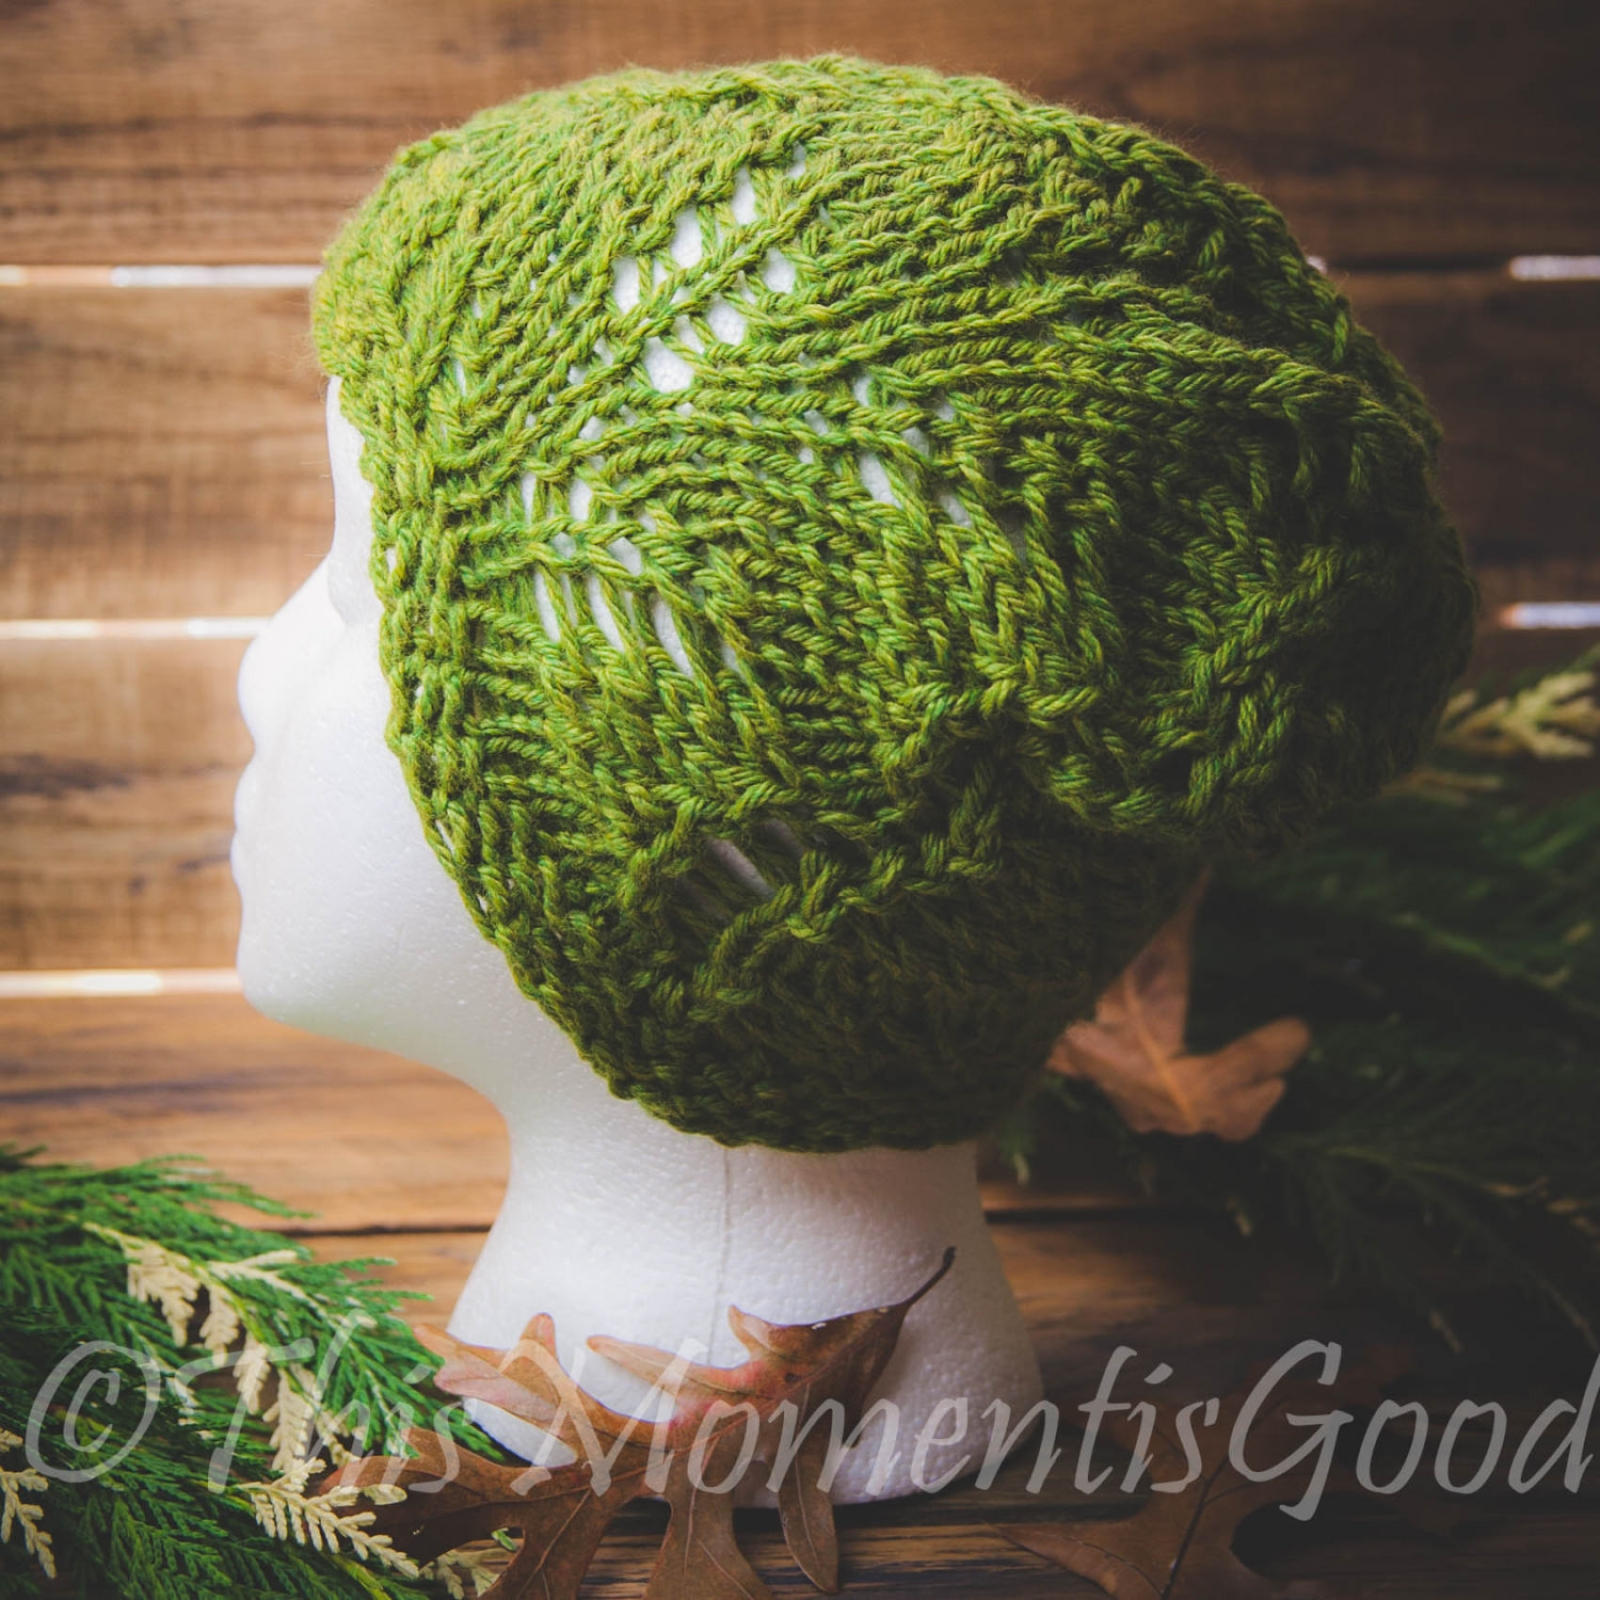 LOOM KNIT FERN LACE HAT PATTERN, LIGHTWEIGHT HAT PATTERN This Moment is Good